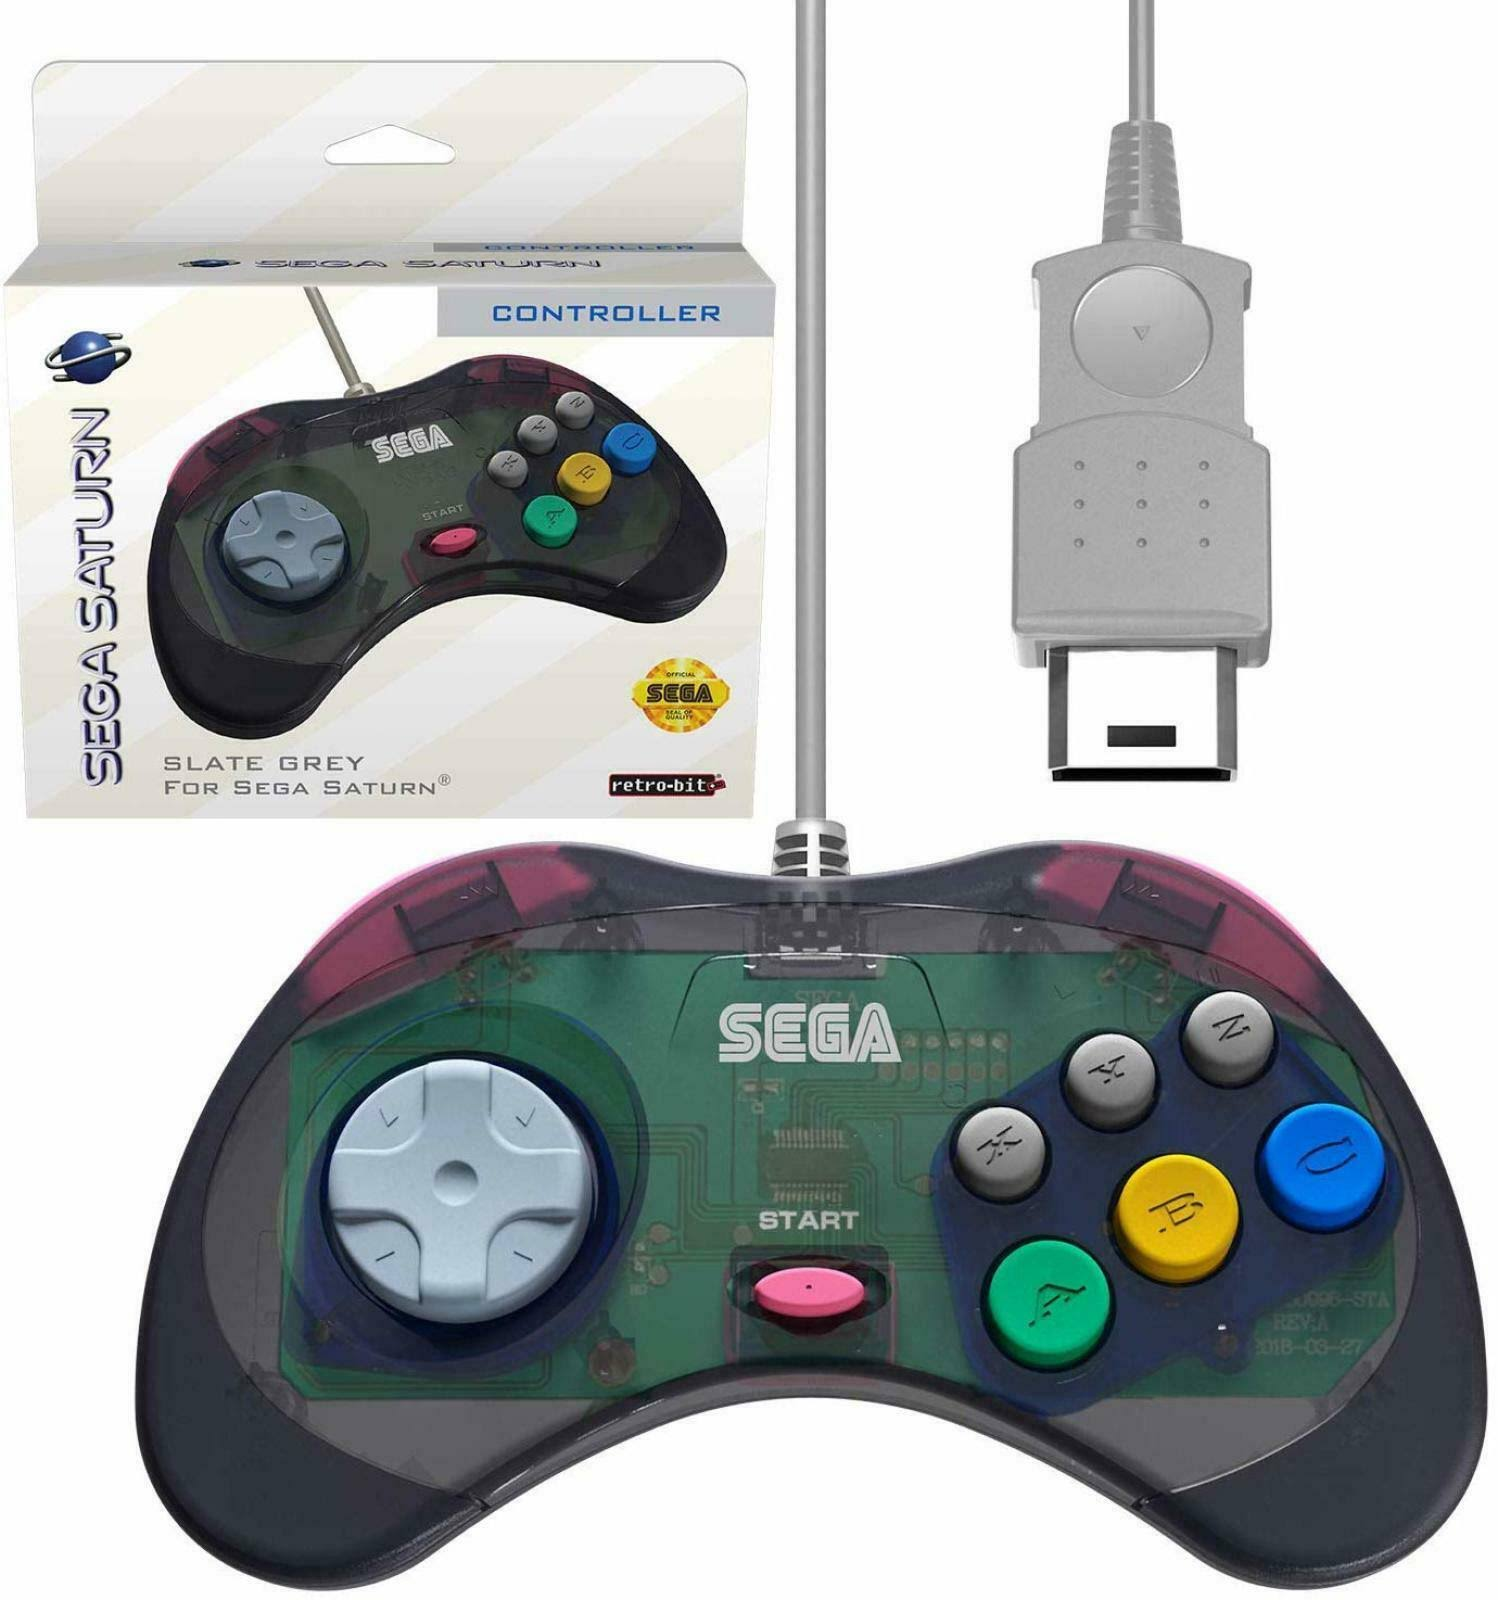 Retro-bit Official Sega Saturn Controller Pad for Sega Saturn - Original Port - Slate Grey